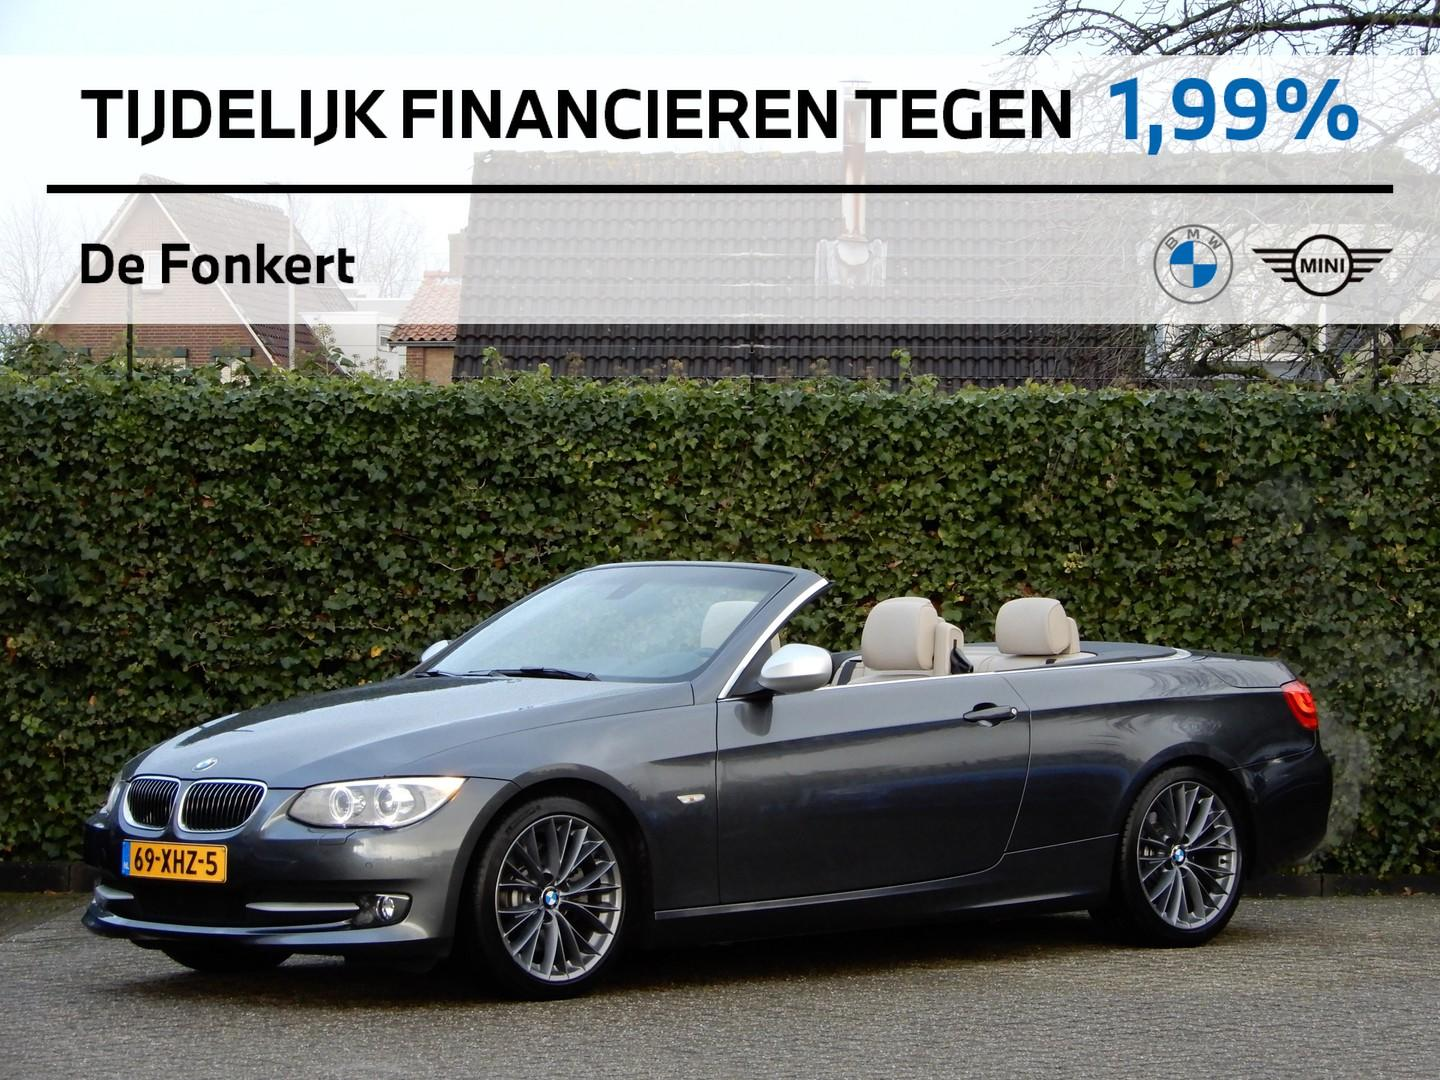 Bmw 3 serie Cabriolet 325i exclusive edition